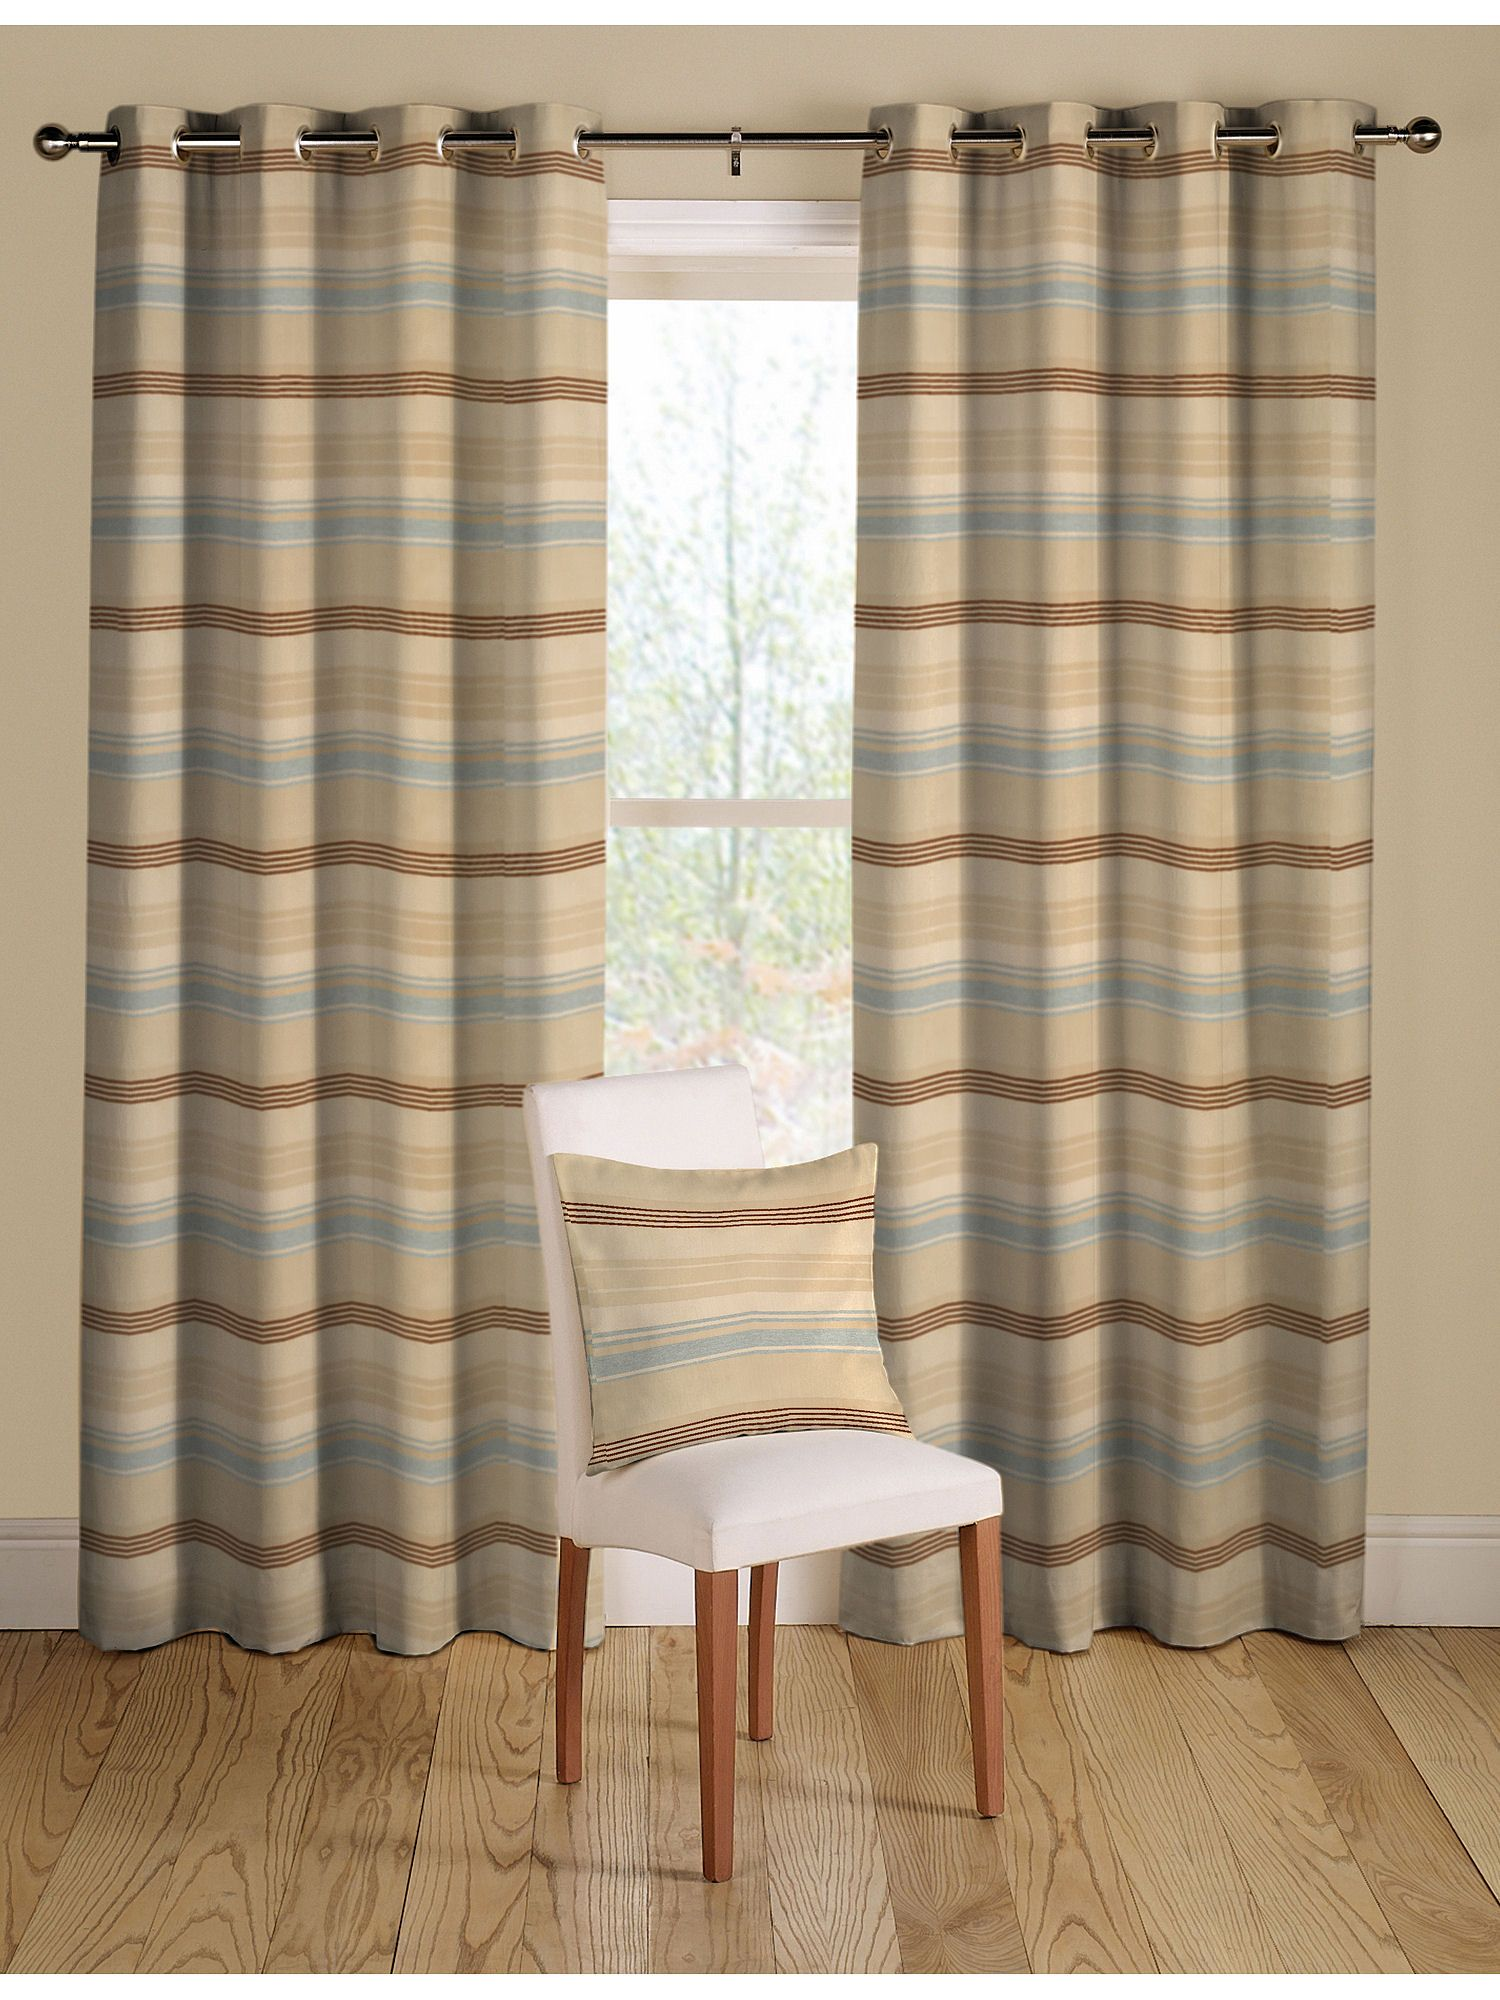 Horizontal Striped Curtains with matching pillow and chair and wooden floor